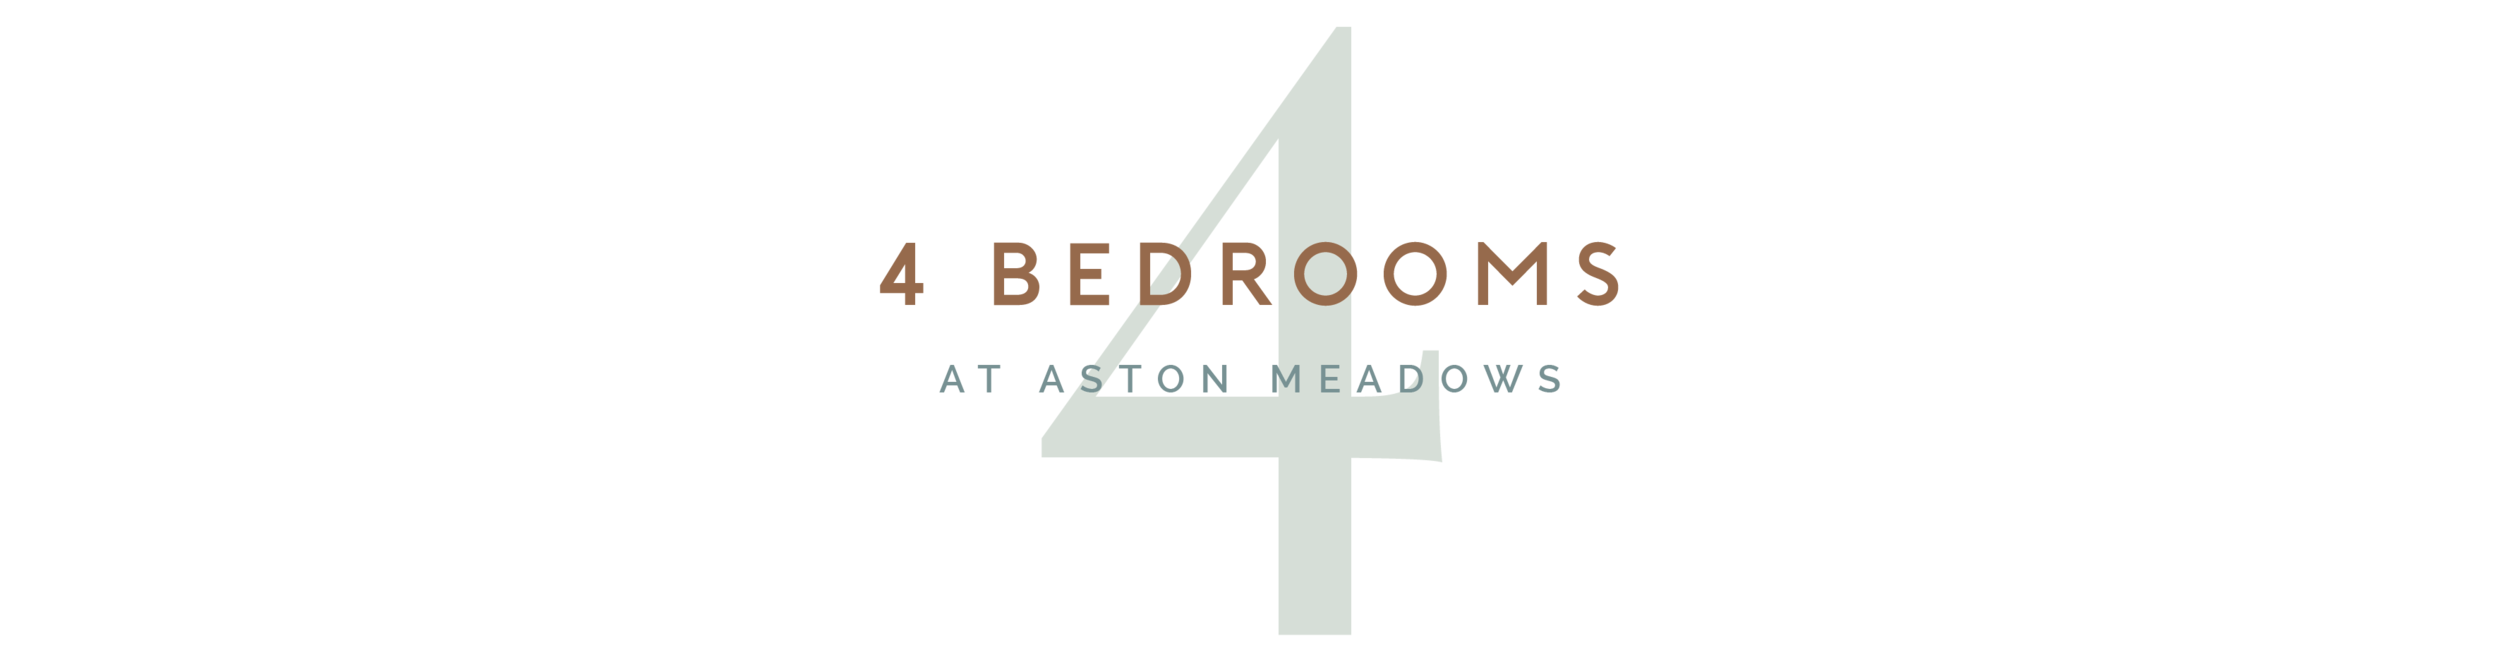 aston_meadows_bedrooms_2.png